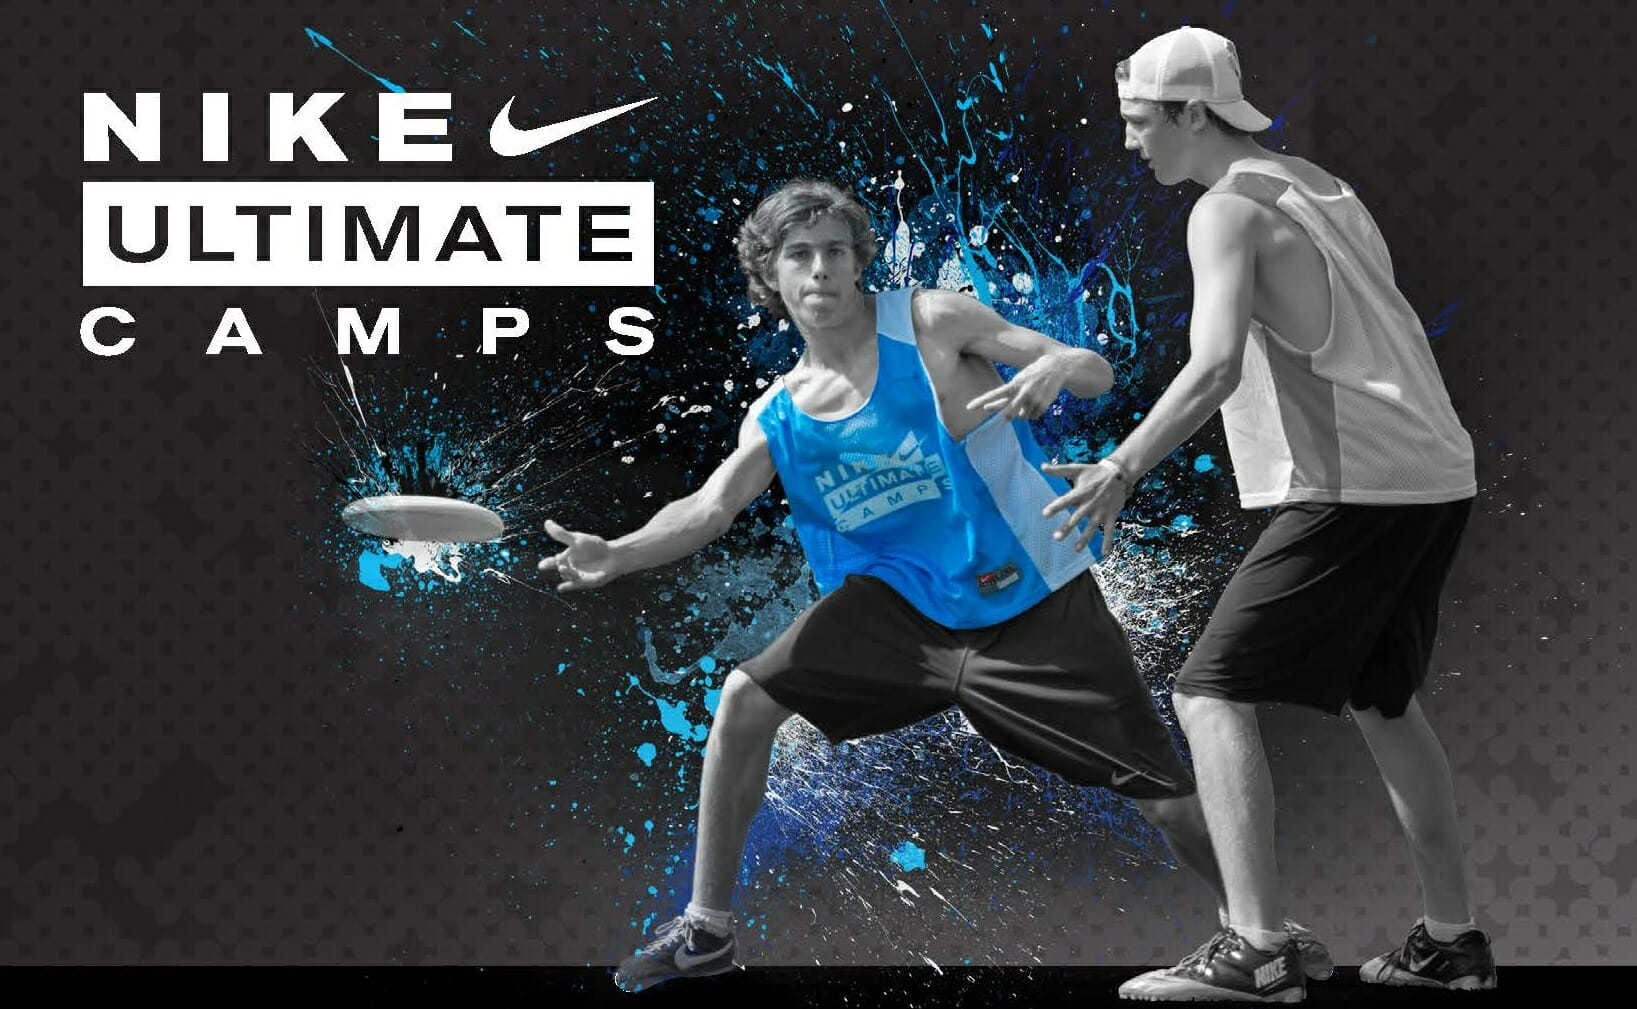 Store Banne Ultima Nike Ultimate Camps Bring Strong Coaching To Youth Scene